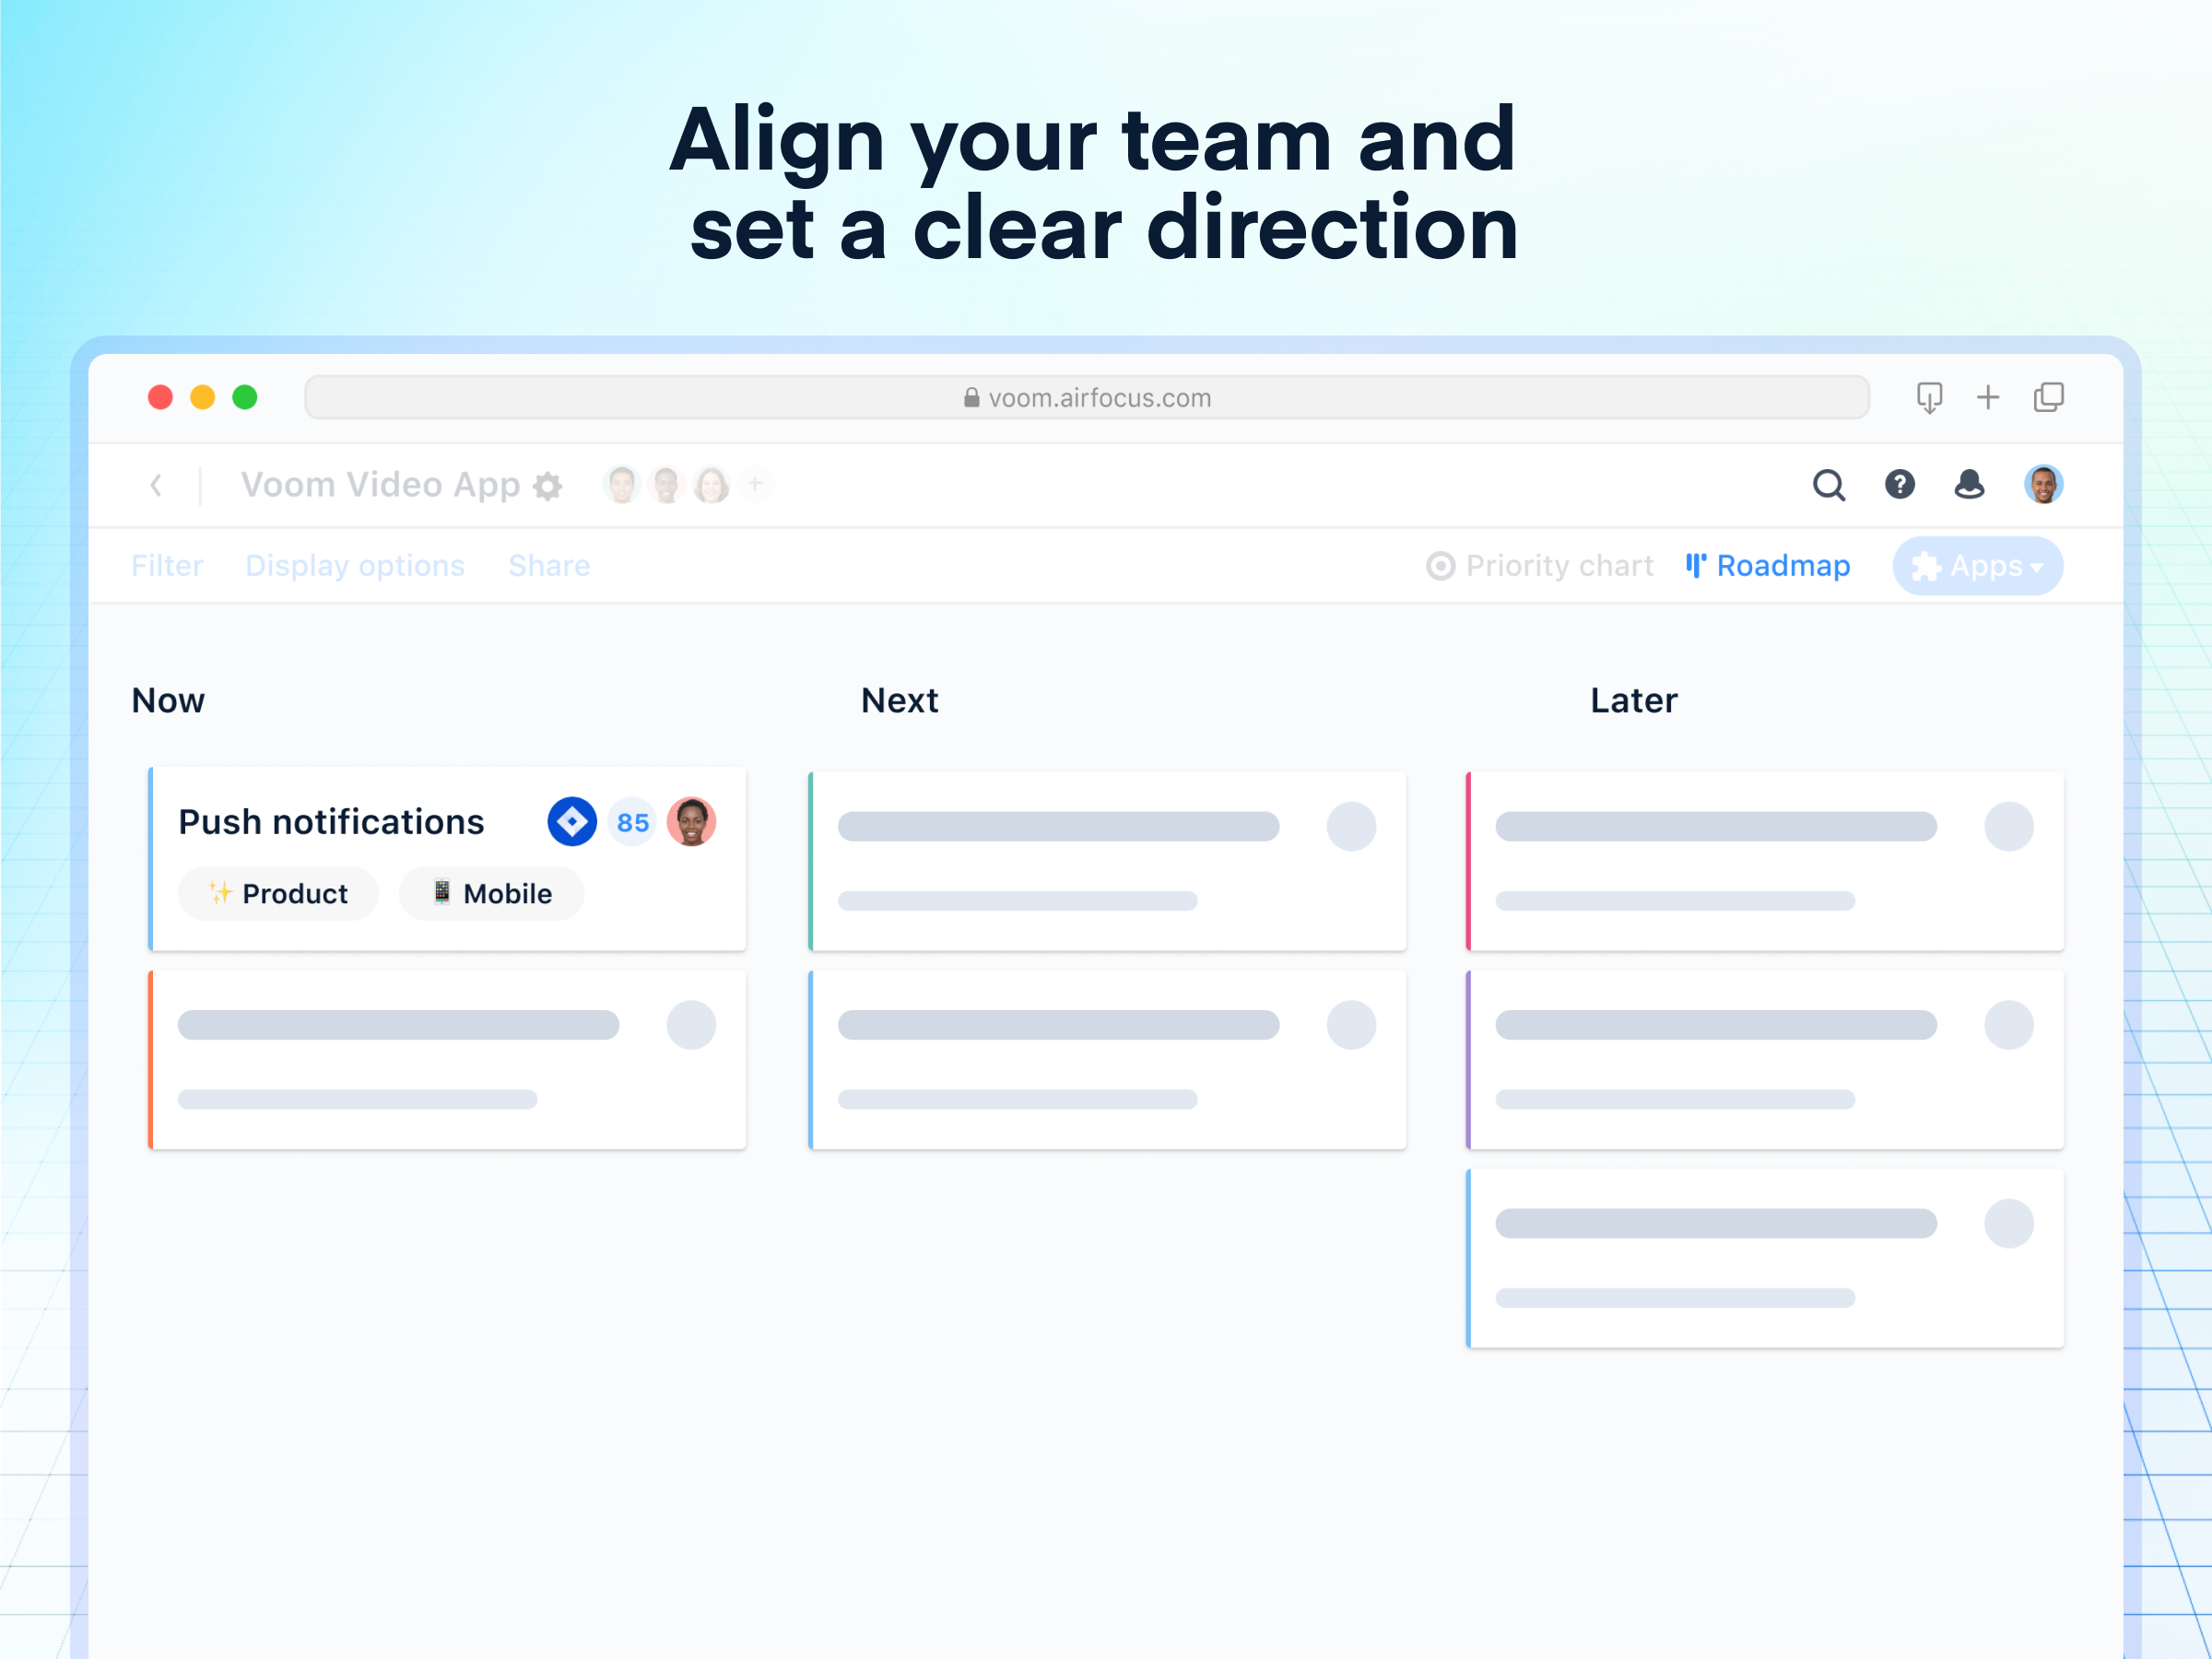 airfocus Software - Align your team and set a clear direction: Build dynamic and strategic, lean roadmaps with ease.  Focus on outcomes with team objectives that help you solve the right problems.